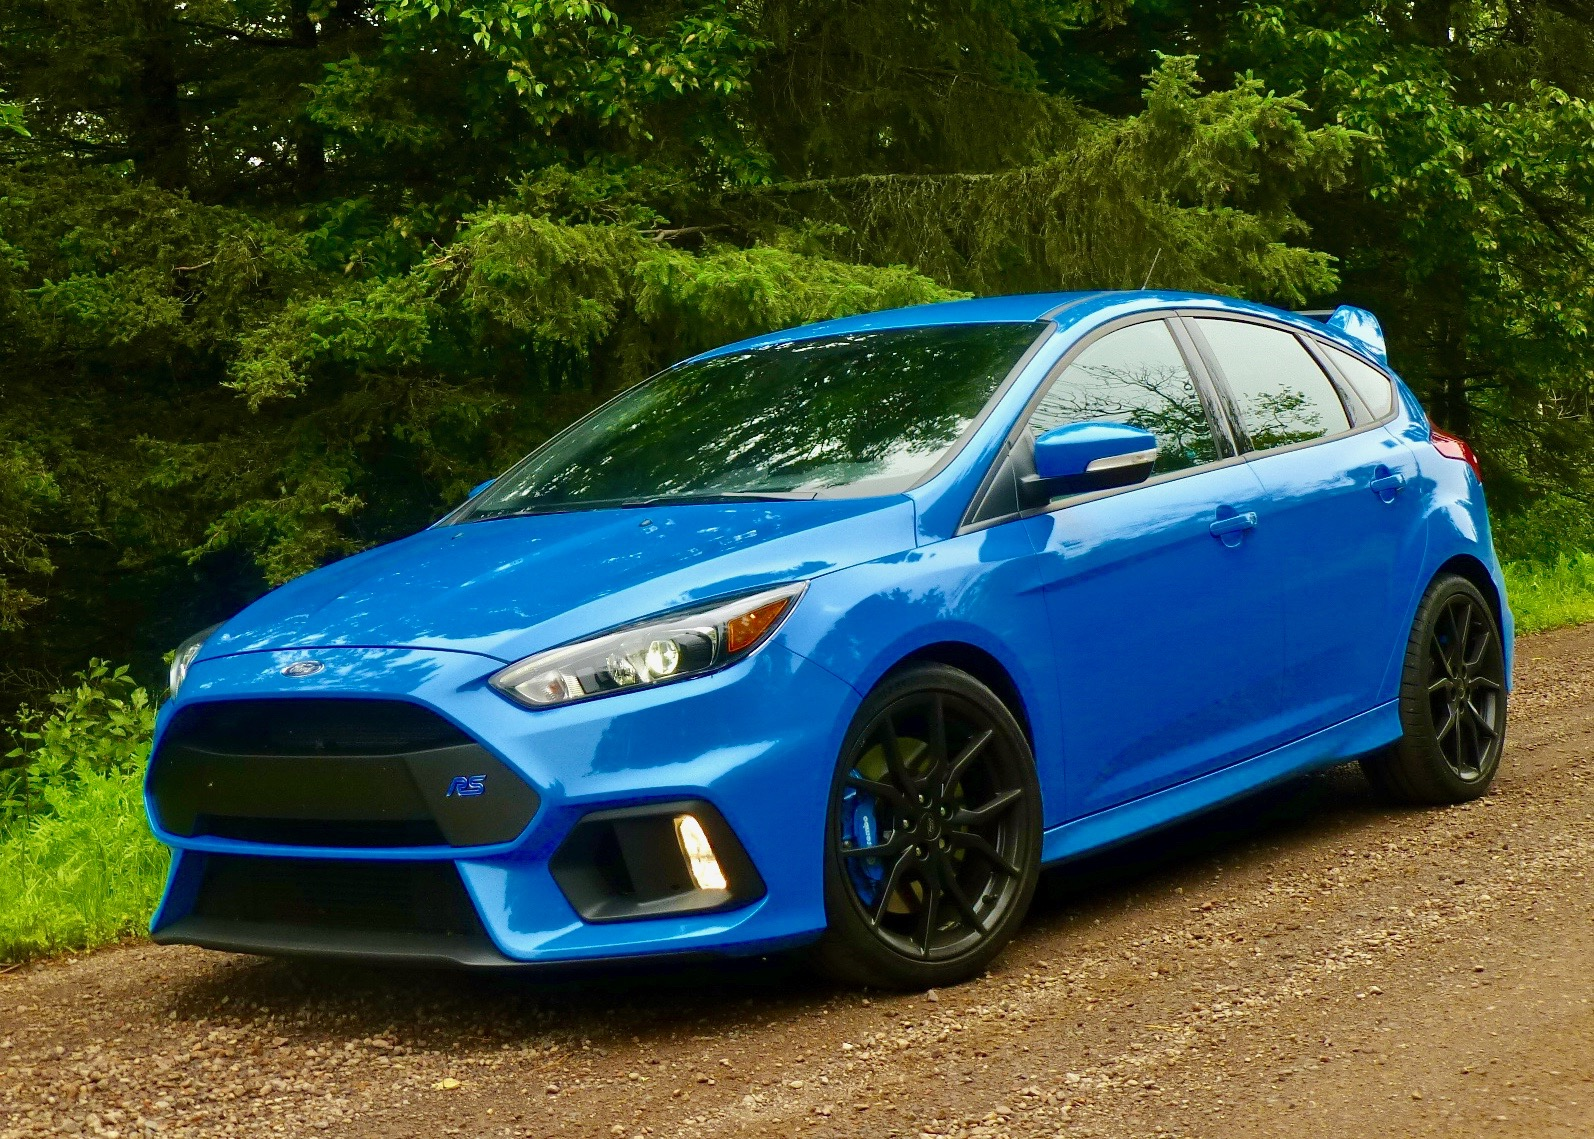 The long-awaited Focus RS finally brings turbo and AWD version to U.S.